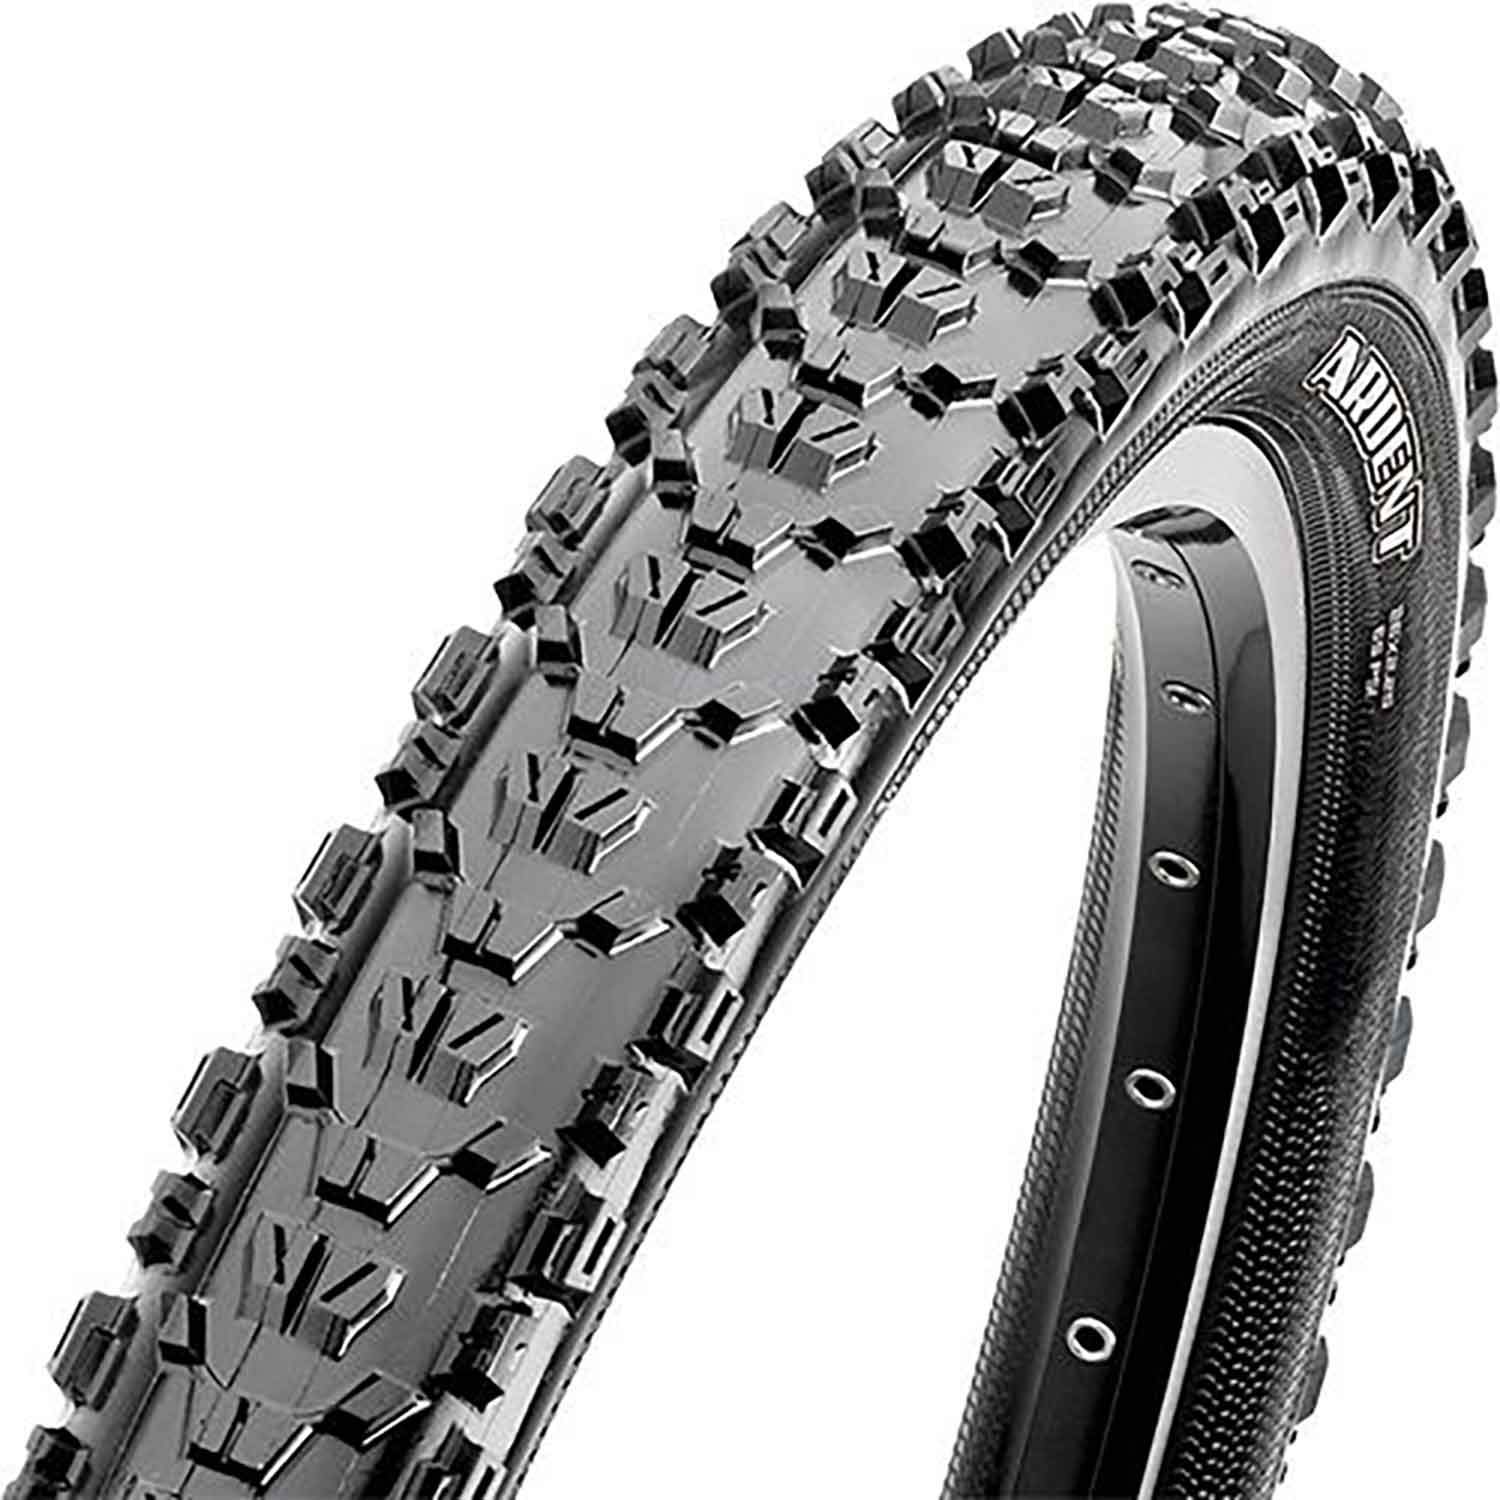 Maxxis Ardent Dual Compound EXO Tubeless Ready Folding Bead 60 TPI Mountain Bicycle Tire (Black - 26 x 2.40)